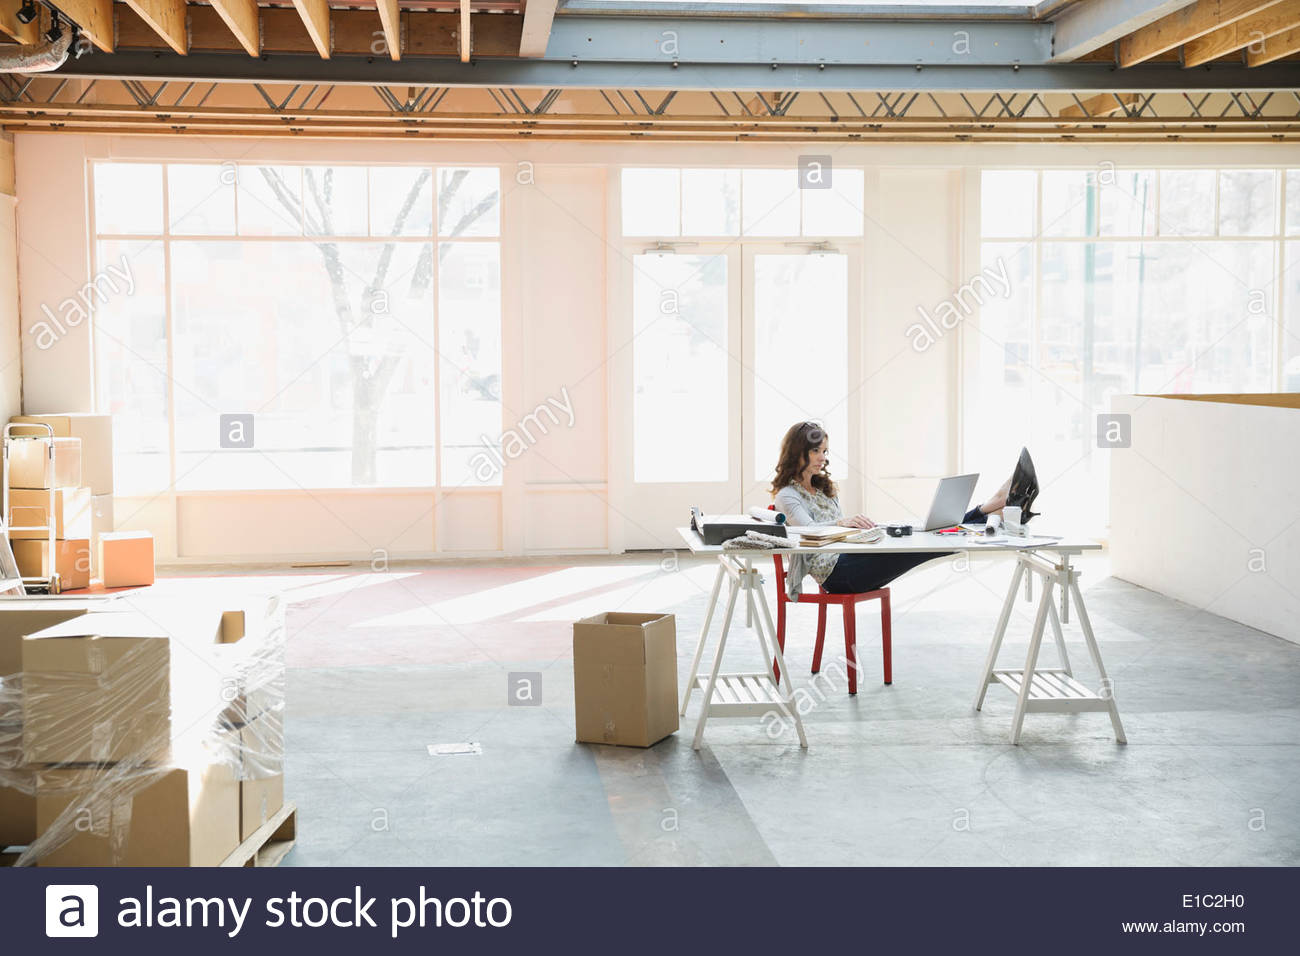 Businesswoman with feet up on desk in office - Stock Image